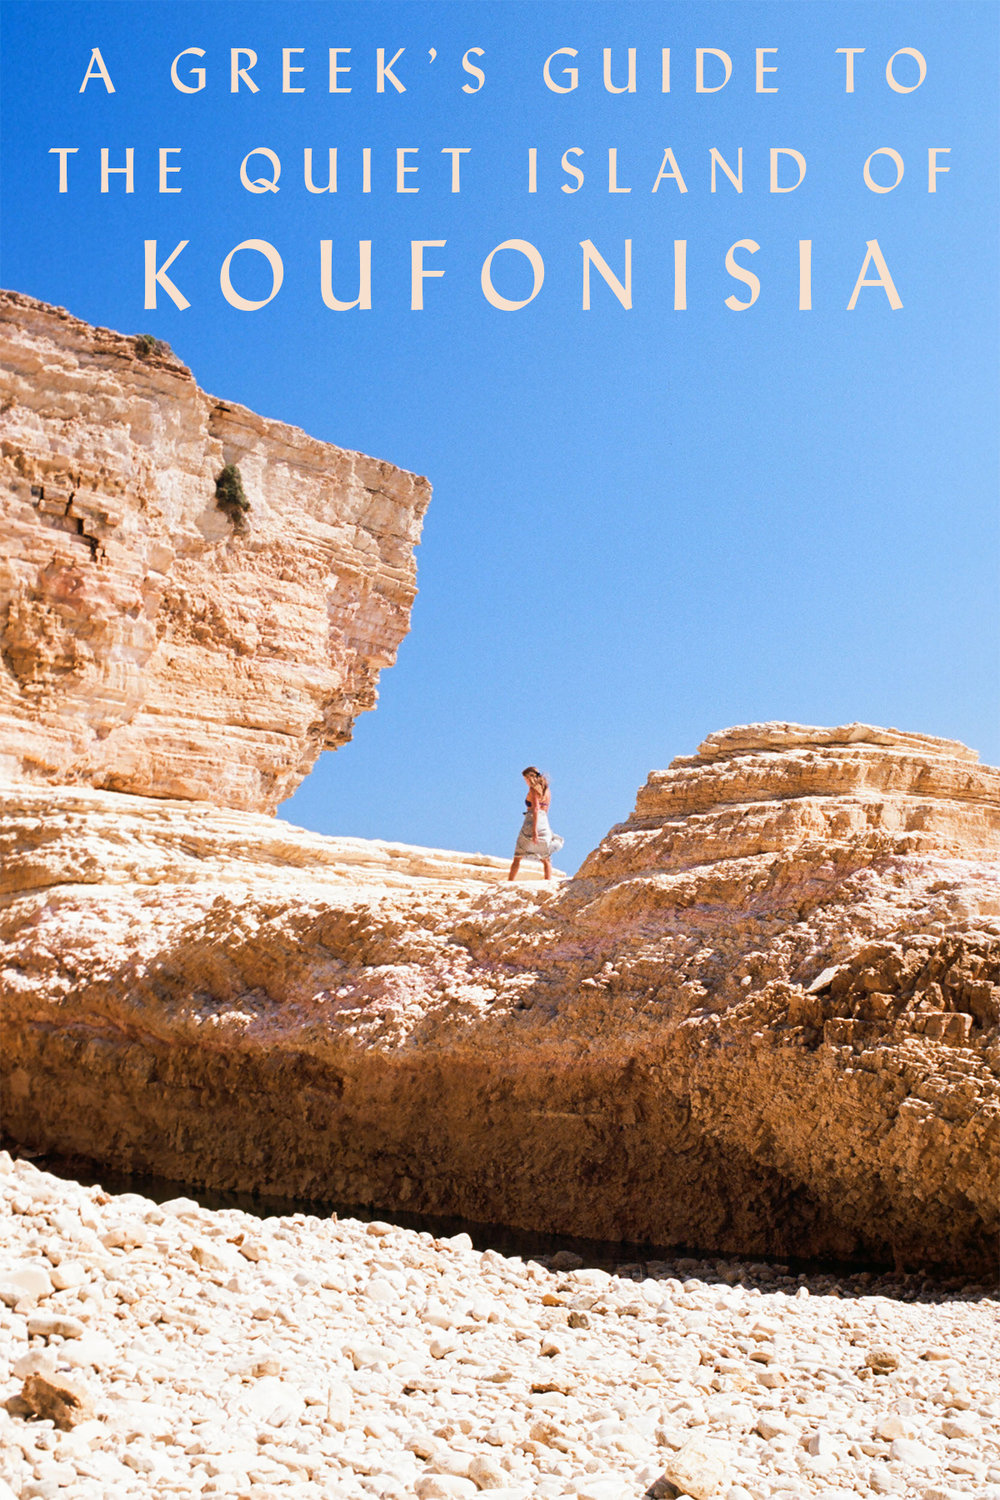 A Greek's Guide to the Quiet Island of Koufonisia.jpg